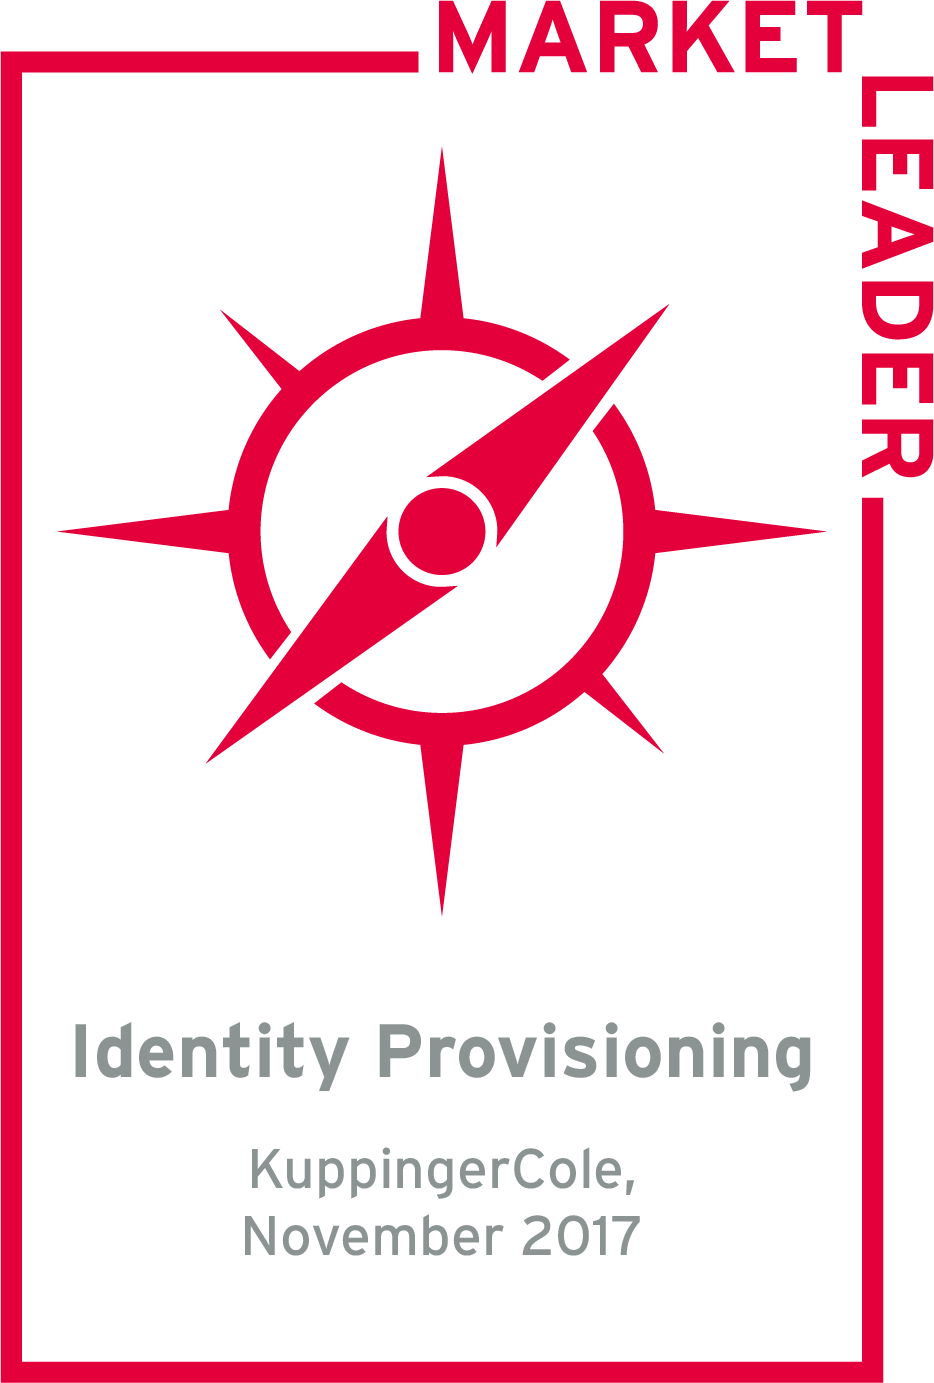 The KuppingerCole Leadership Compass for Identity Provisioning